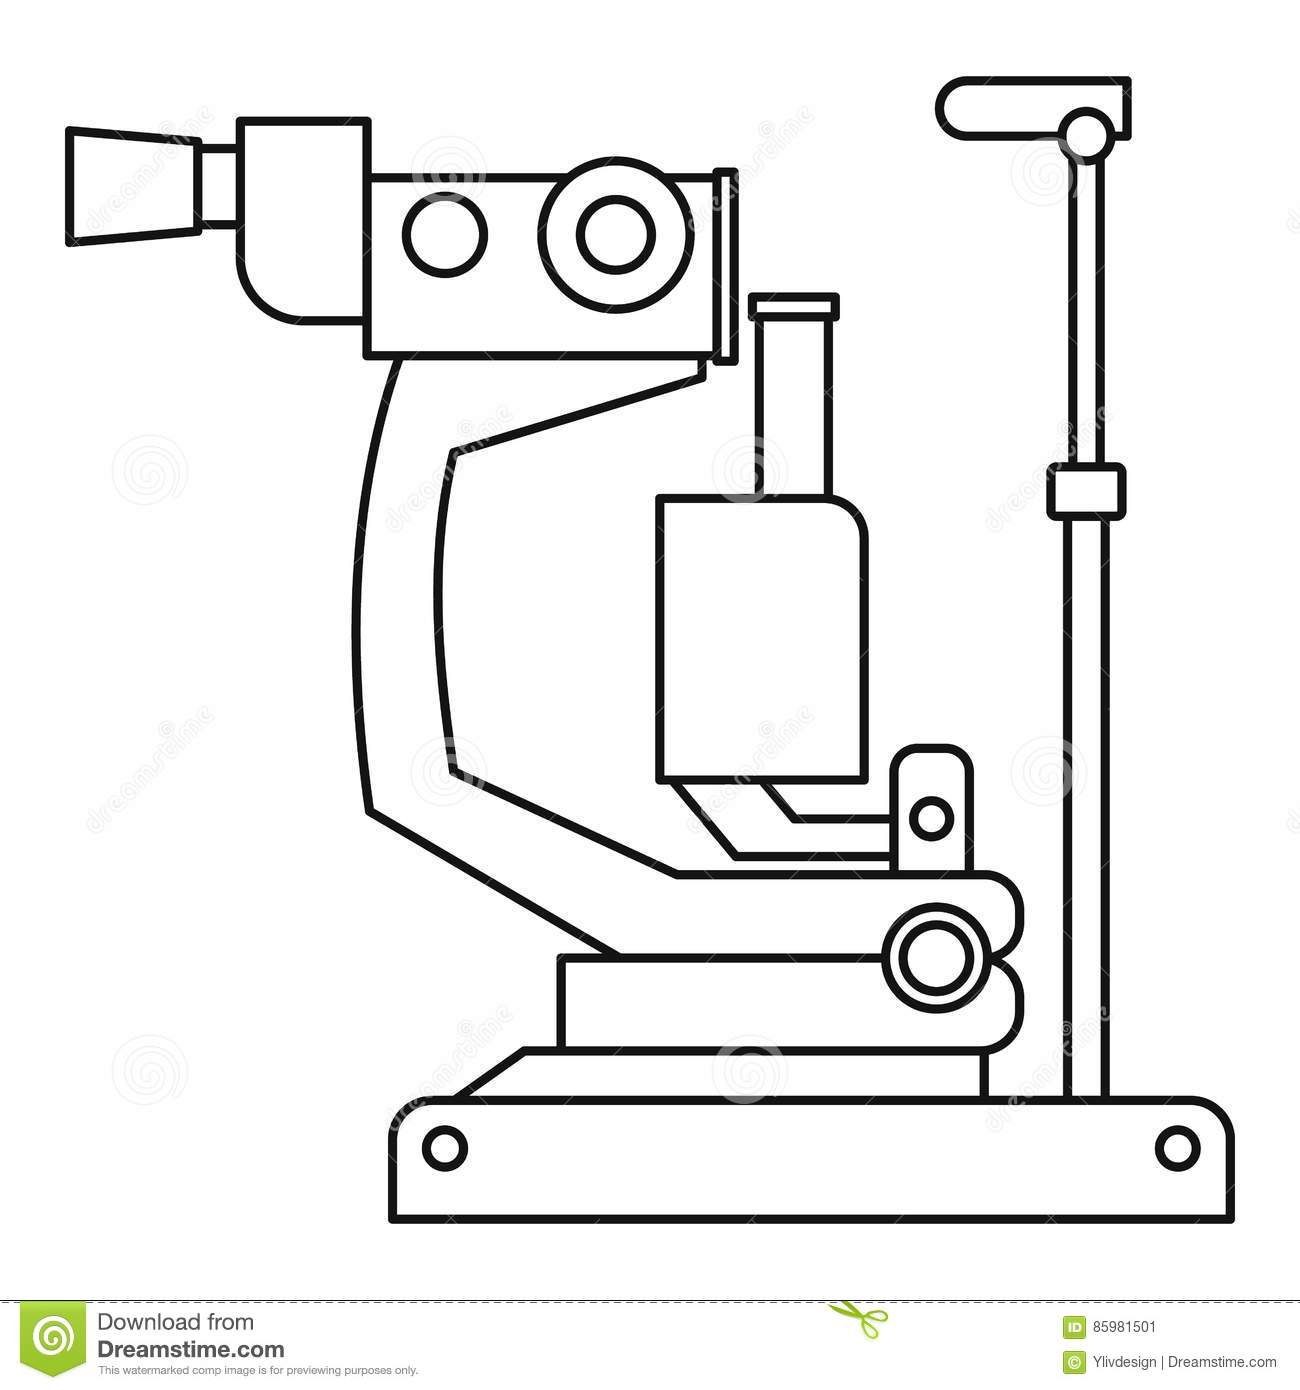 Phoropter, Ophthalmic Testing Device Machine Icon Stock